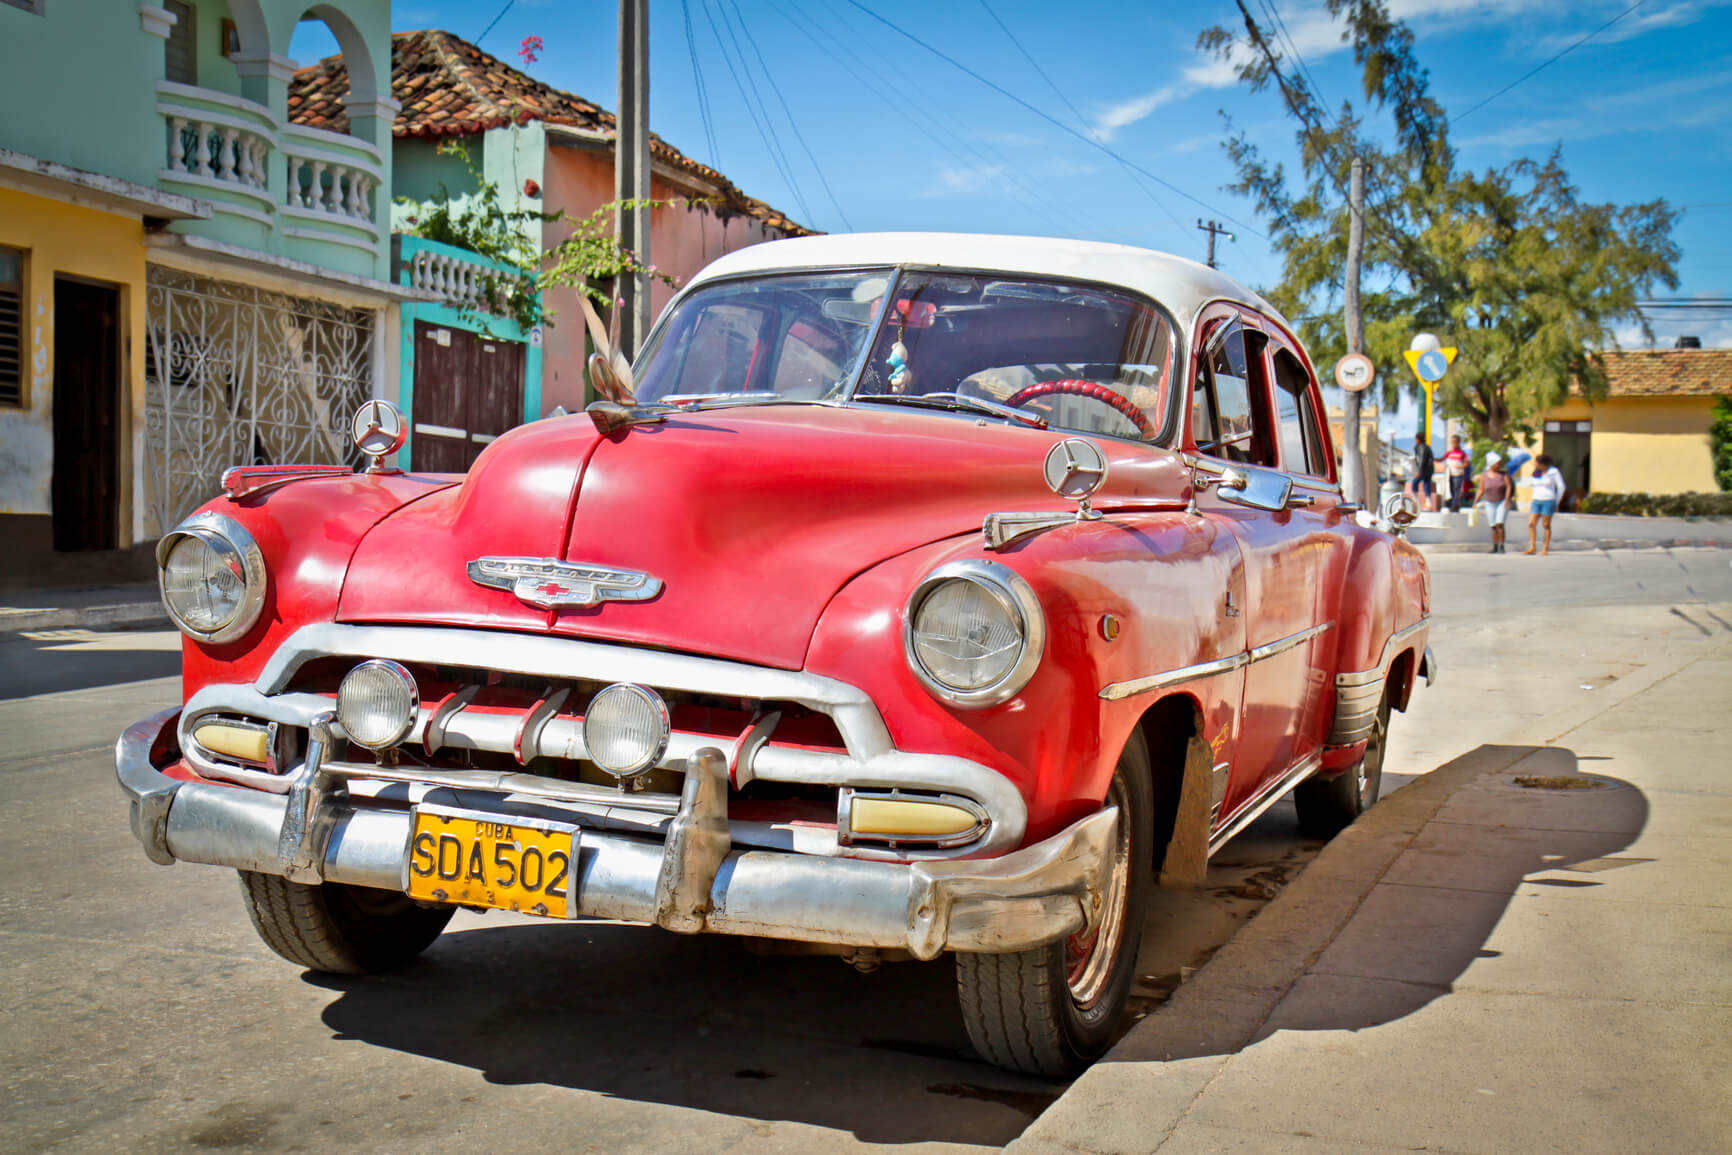 HOT!! PACKAGE HOLIDAY: Dusseldorf, Germany to Havana, Cuba for 7 nights at a 3* hotel for only €334 per person